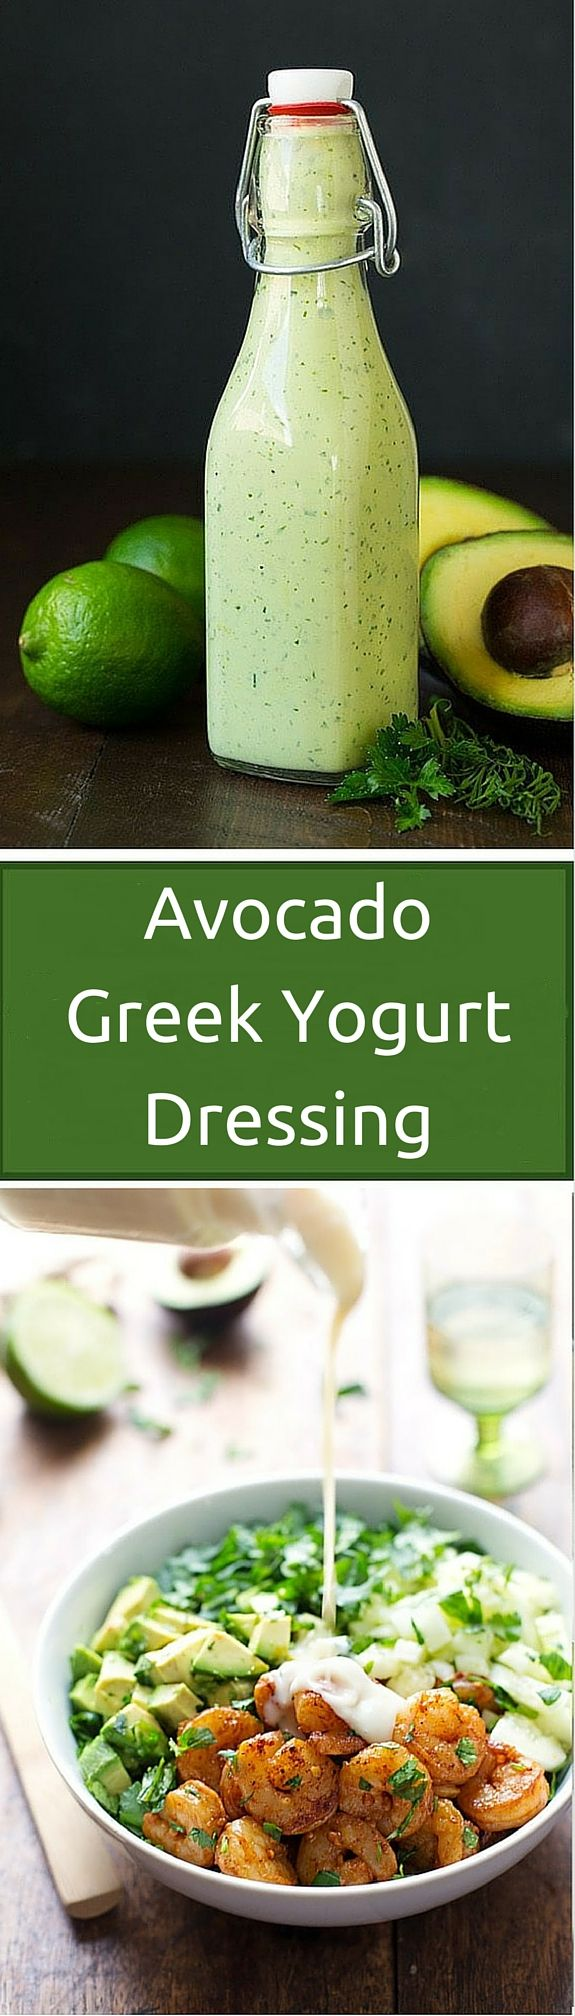 healthy dressing recipe